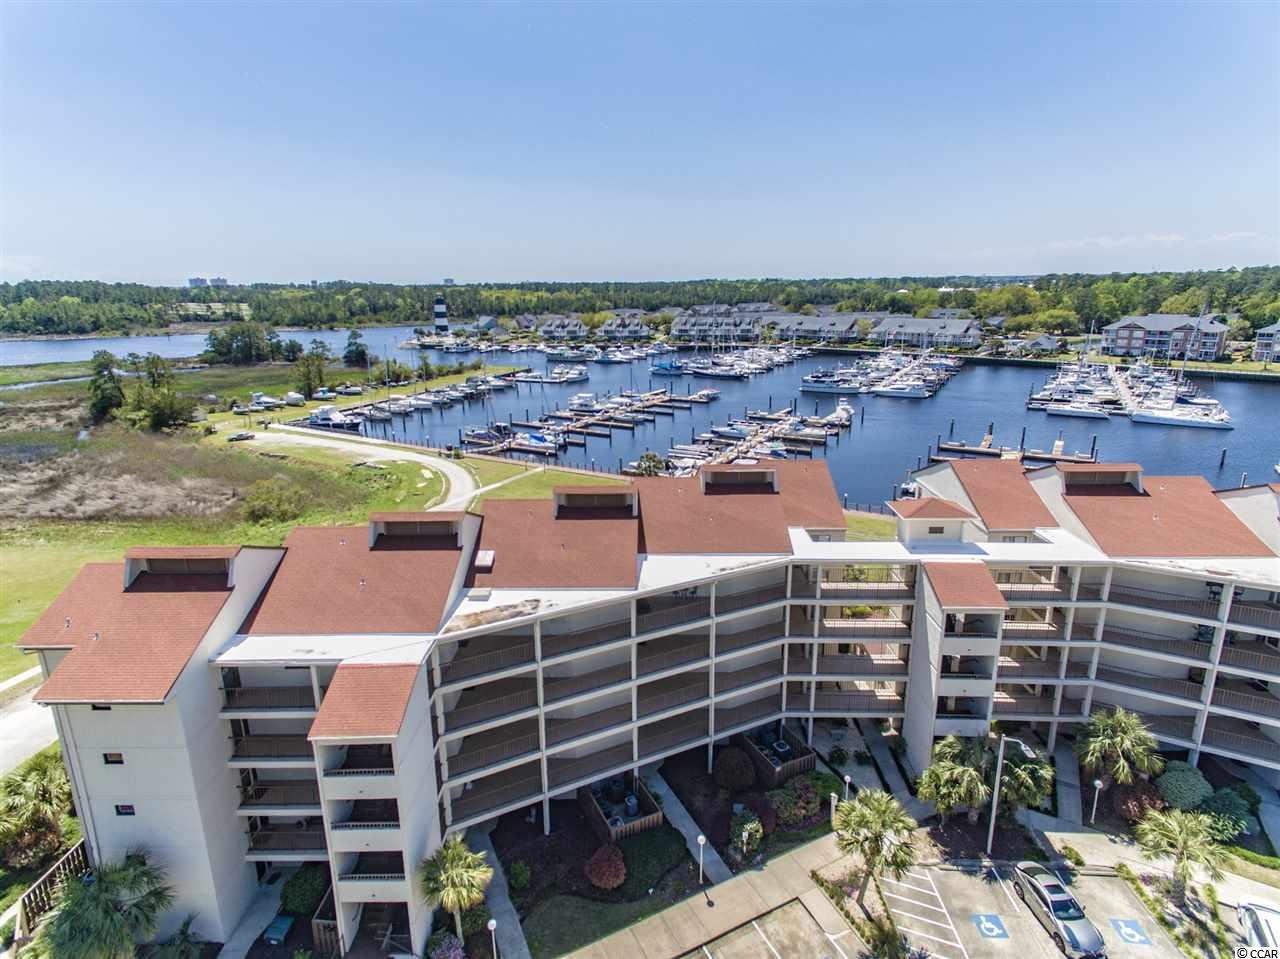 You will be amazed at the water and marina views from your oversized balcony! You may live outside at this one! Not only do you have a huge balcony for entertaining and spectacular views, but you can keep a watch on your boat because this condo comes with a 42 ft. boat slip included in the sale! This spacious 3BR/3BA condo in Little River is calling your name for the perfect water life! Come put your personal touch on this condo with some updating and you will have a rare opportunity to own a unique property that doesn't come available often in this building. Split bedroom plan, views from almost everywhere in the property, and a private and secluded hideaway only minutes to the beach. Don't wait!